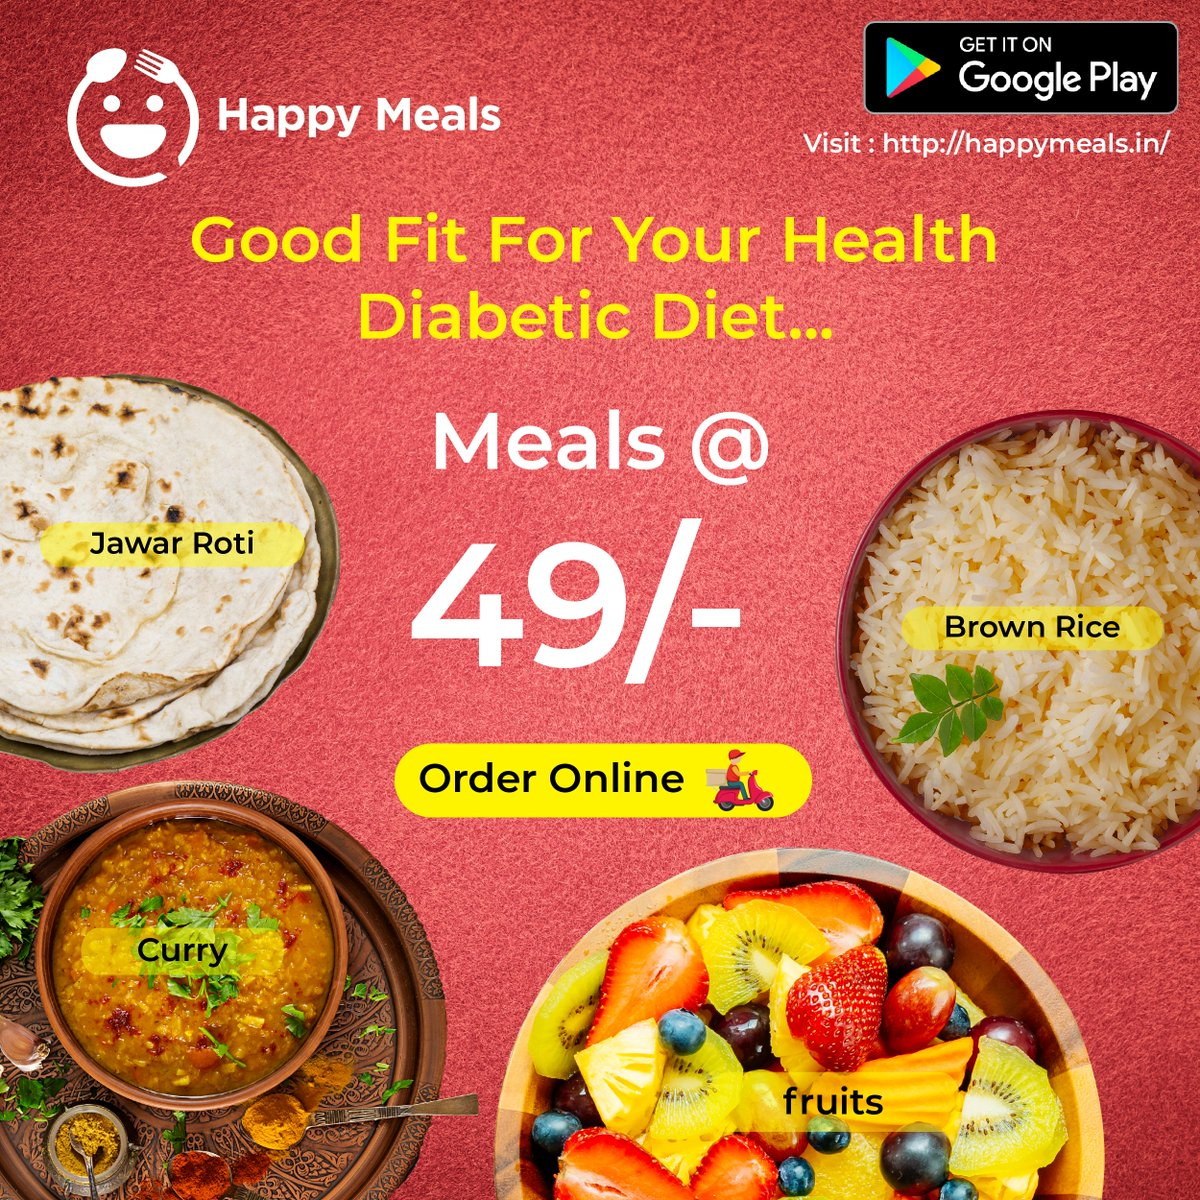 Fit food for your health. Meals starts from 49/- Get on a monthly subscription and free online delivery... For more details visit us  or call us 88856 66616 #fit #diet #hyderabad #health #meals #nutrition #pregnancy #diabatic #orderonline #TuesdayThoughts